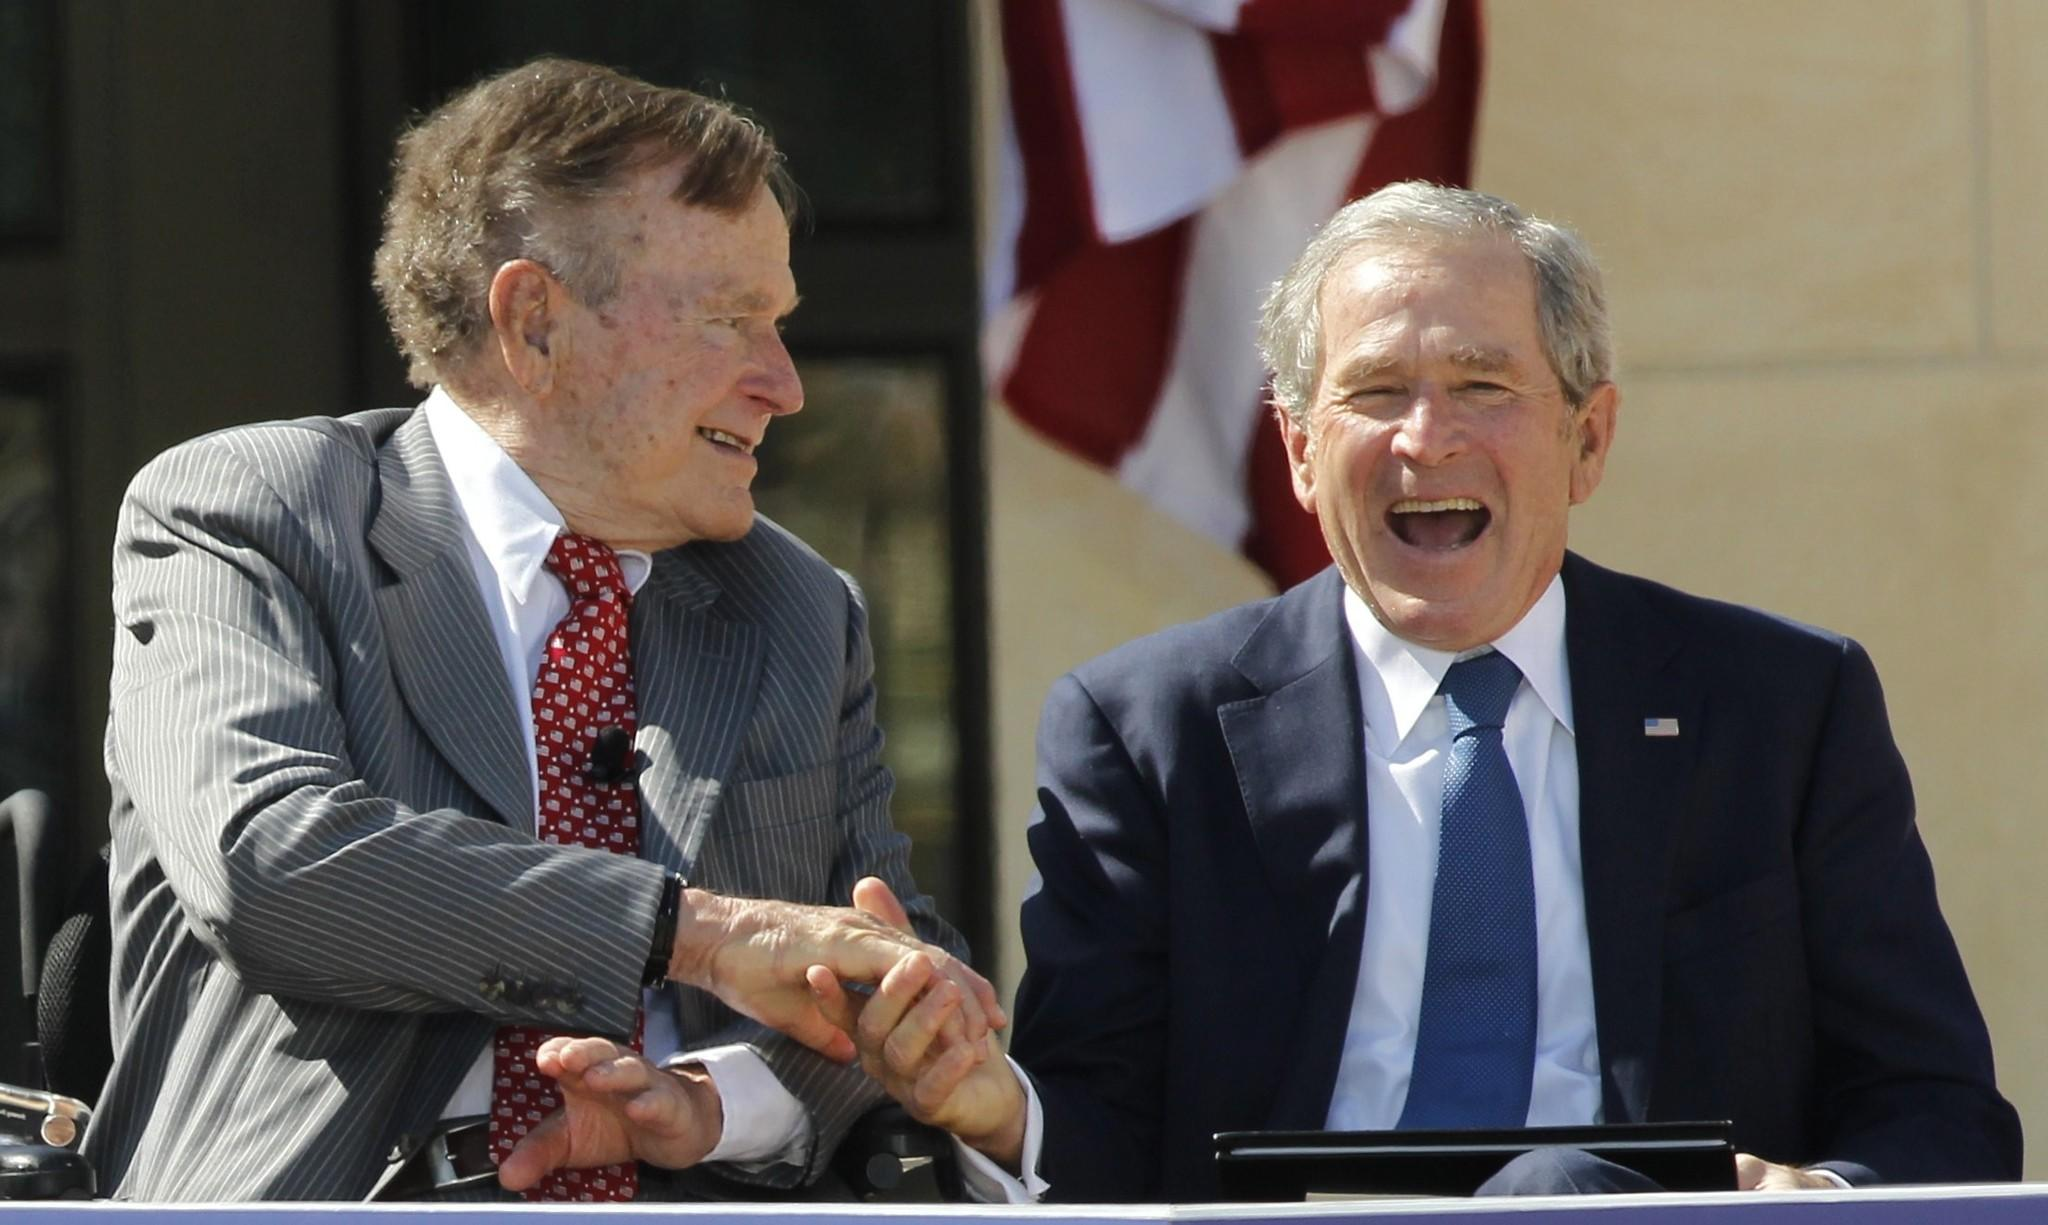 Father and son, and former U.S. Presidents, George H.W. Bush (L) and George W. Bush, shake hands at the dedication for the George W. Bush Presidential Center on the campus of Southern Methodist University in Dallas, Texas April 25, 2013.